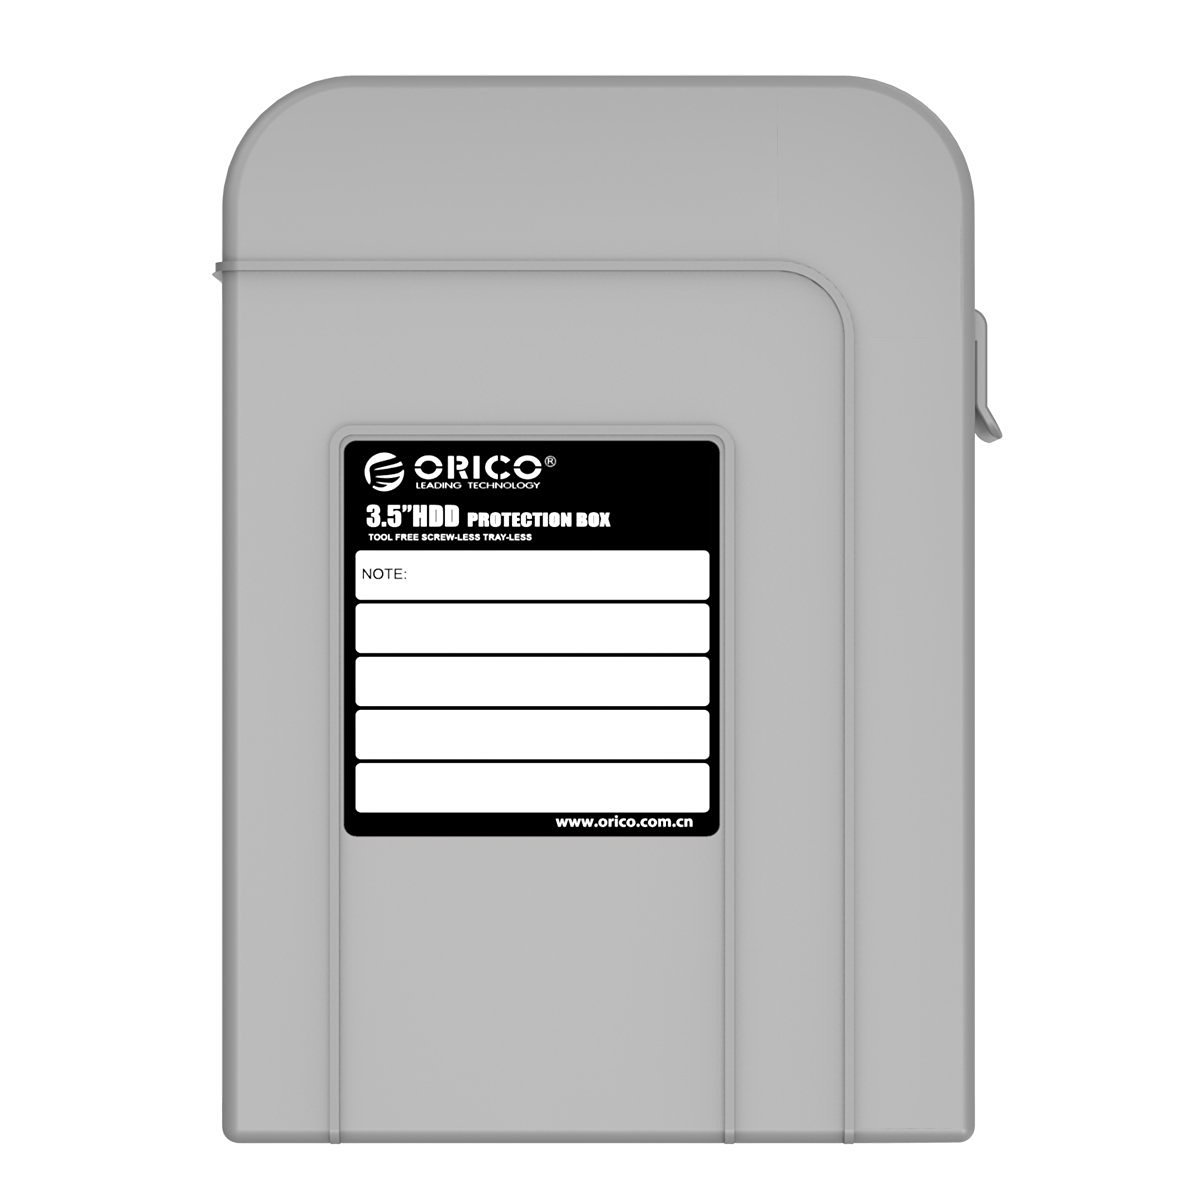 Philippines Orico 35 Inch Hard Disk Drive Hdd Storage Protection Box Hardshell Carrying Case Gray